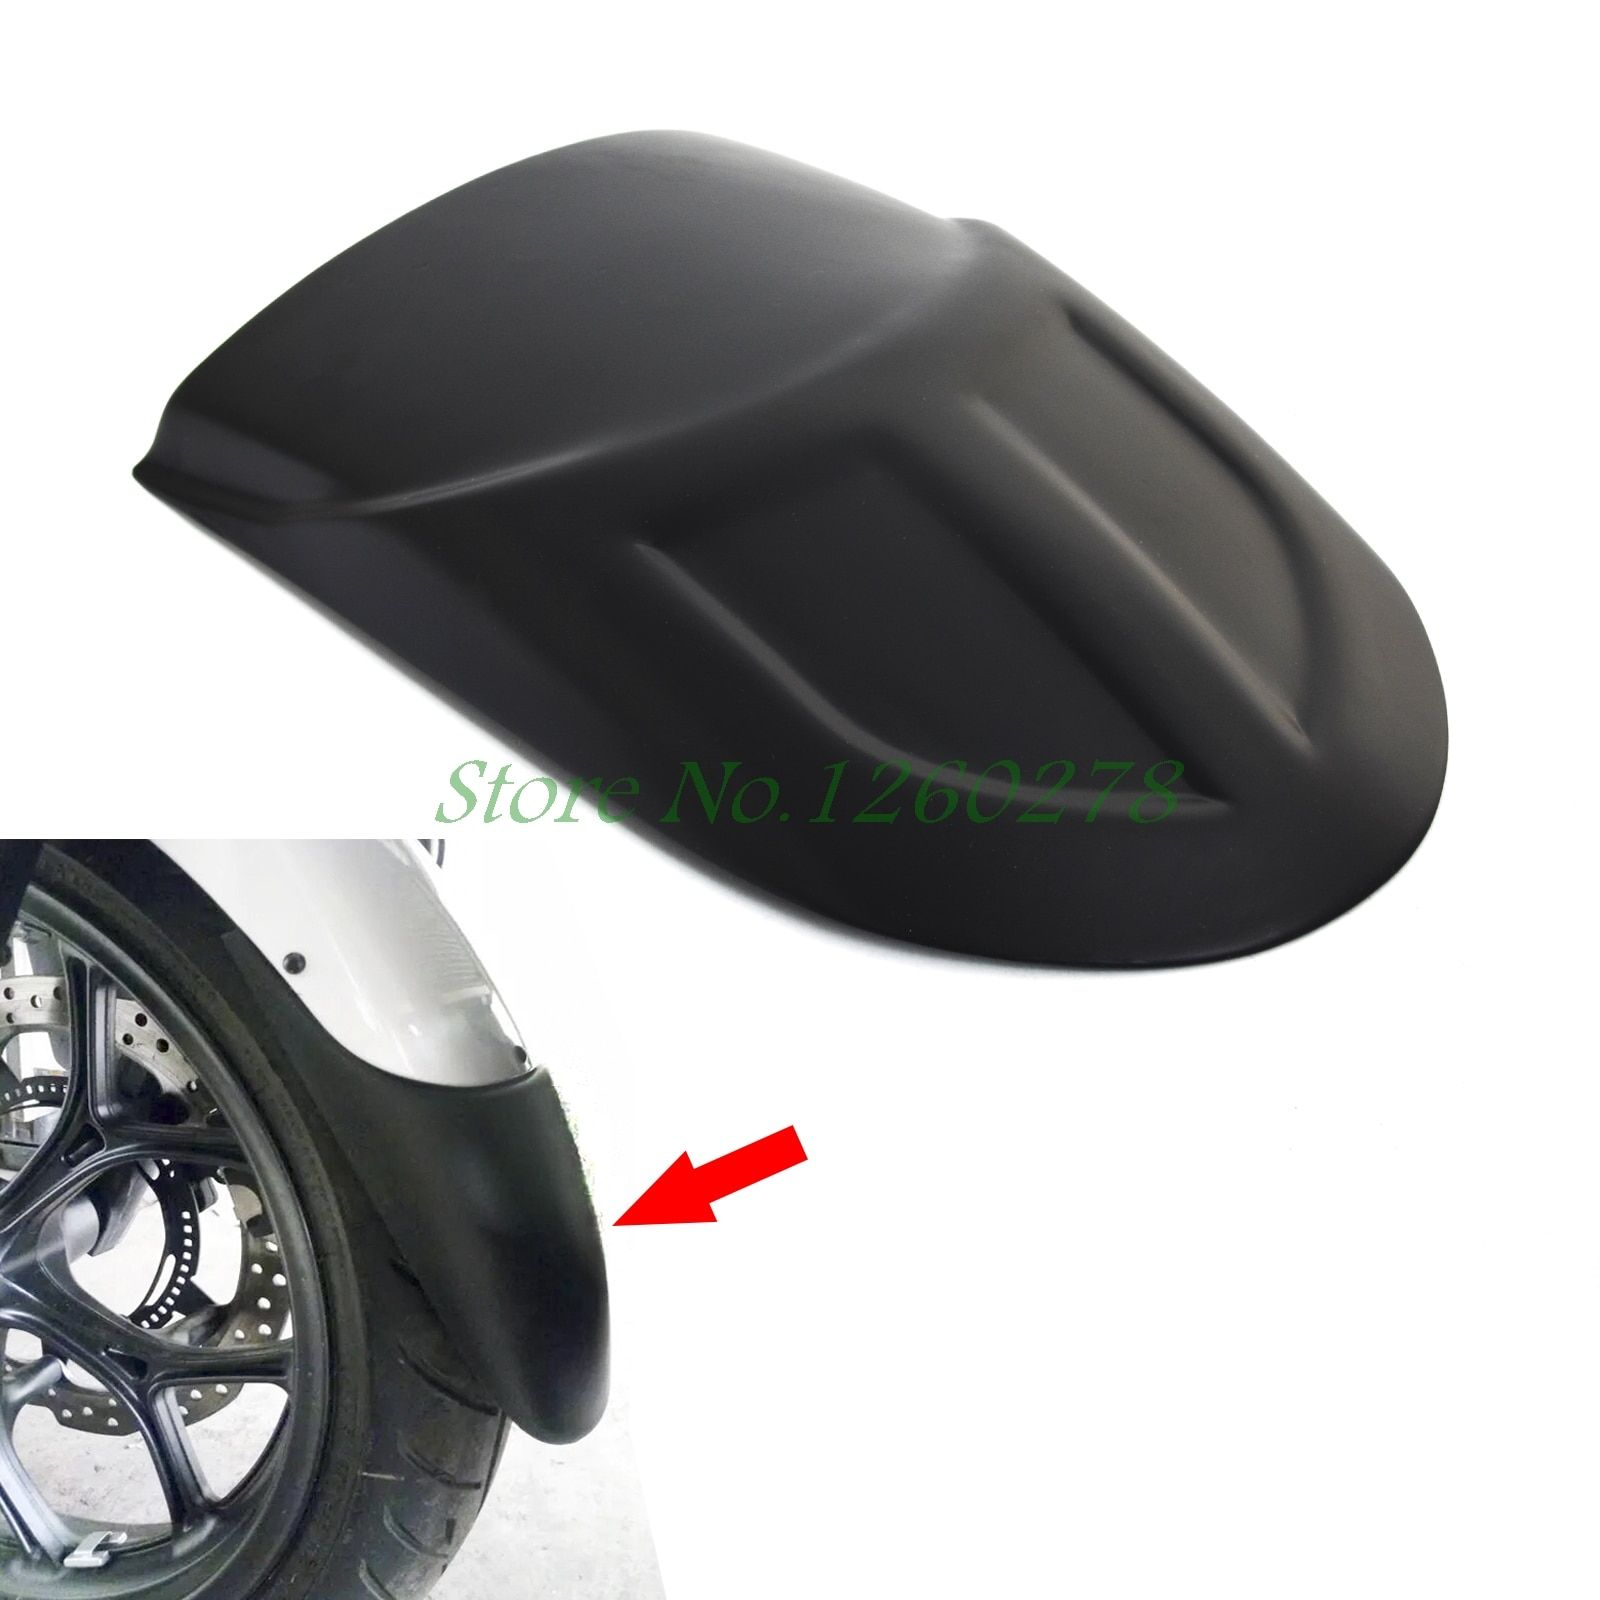 Motorcycle Front Fender Extension Extender For Kawasaki Versys 1000 Versys 650 KLE650 2010 2011 2012 2013 2014 2015 2016 2017